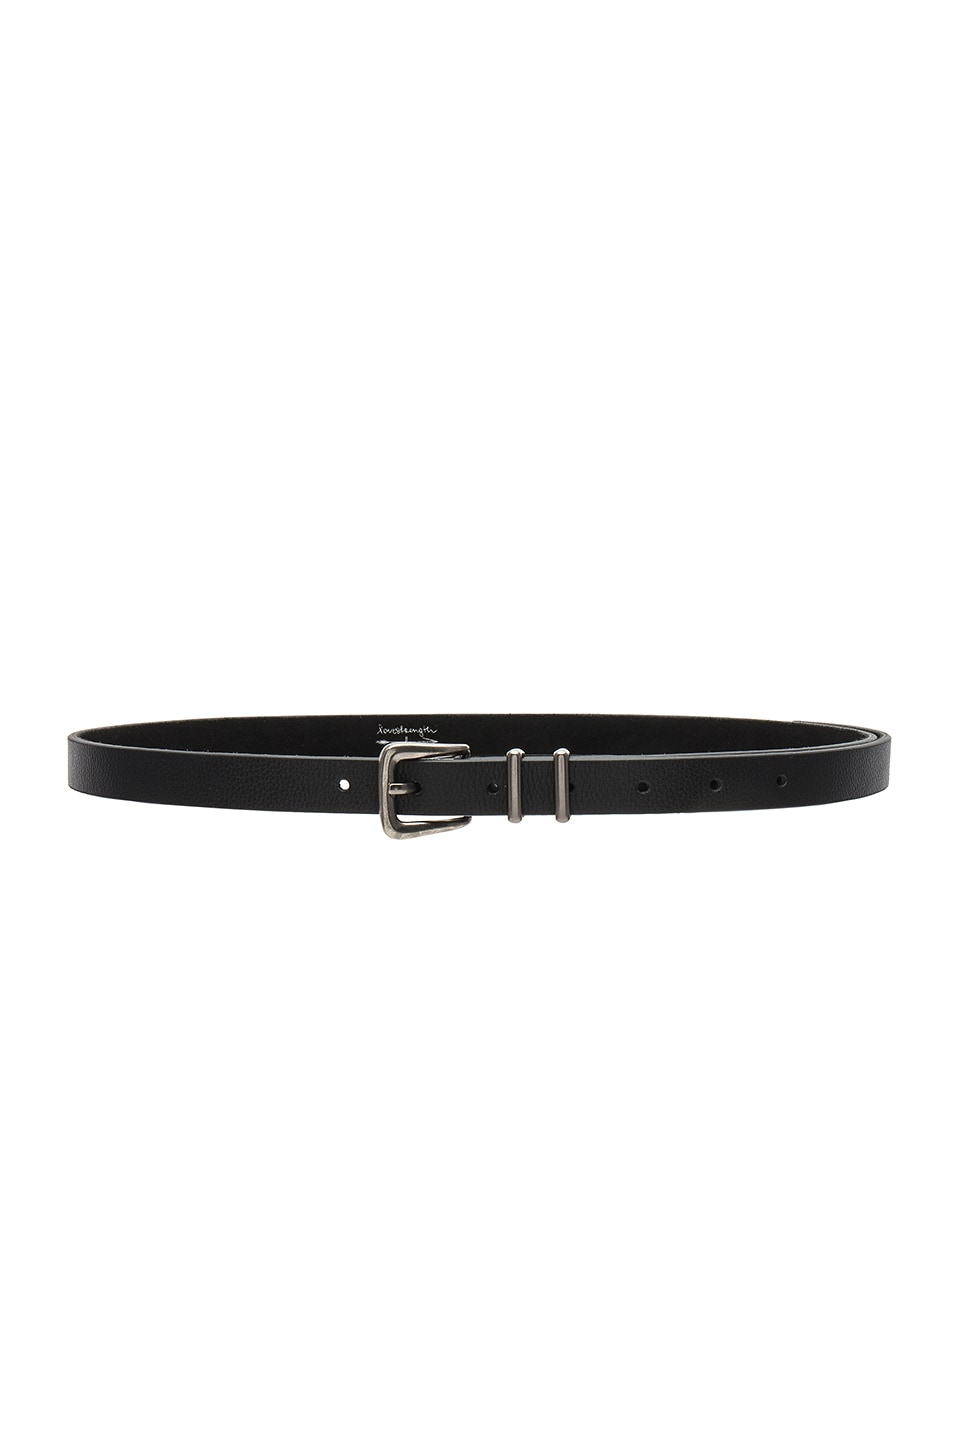 Lovestrength Marina Belt in Black Pebble Leather